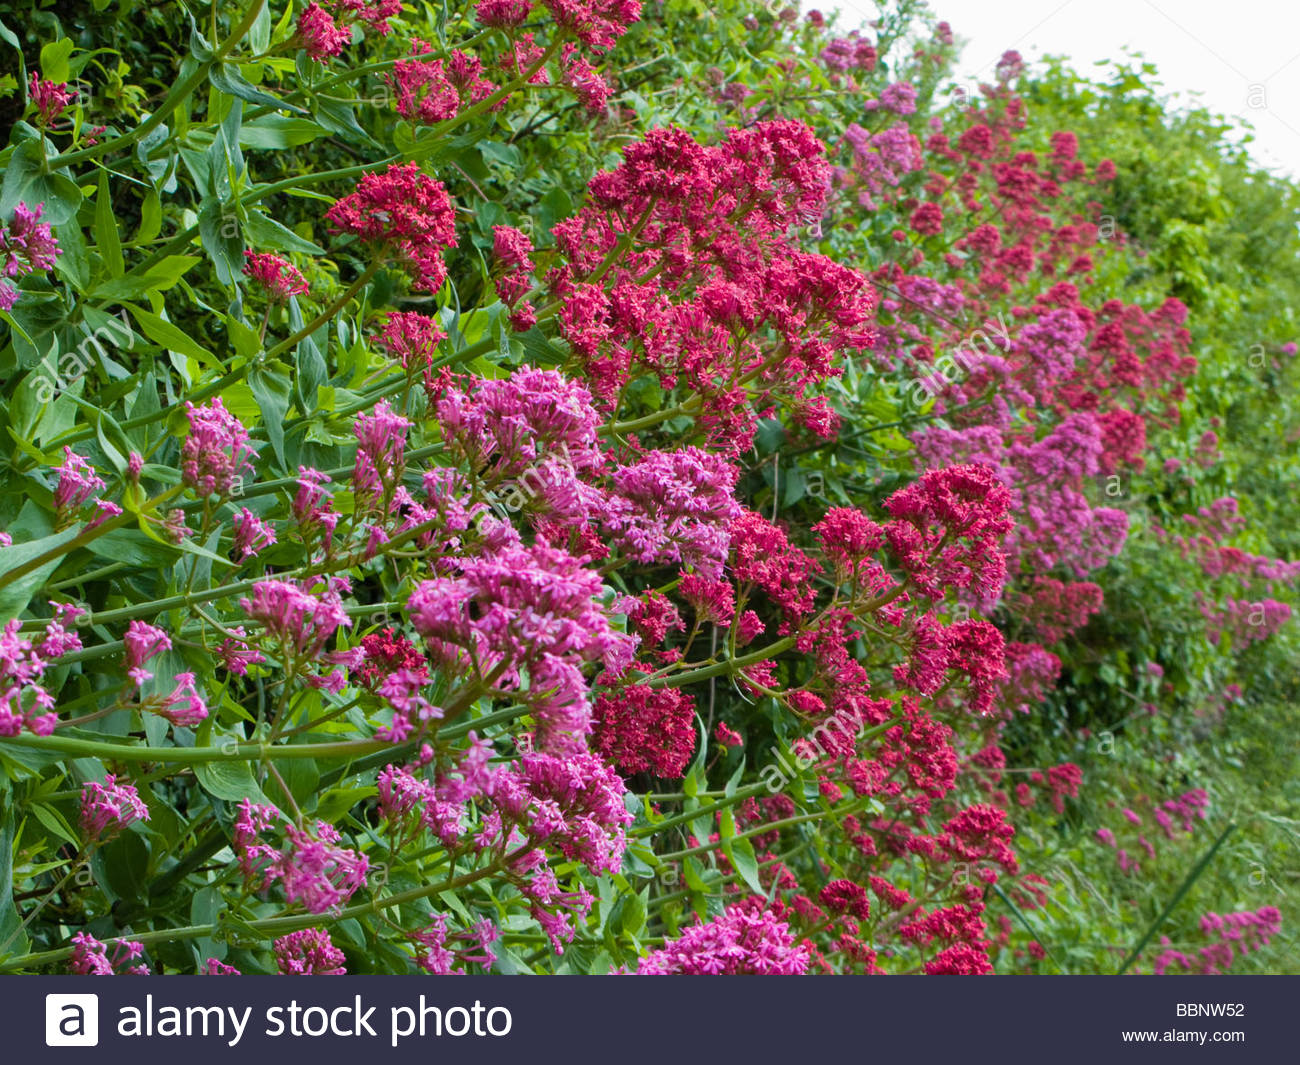 Cats Valerian Valeriana officianalis growing in wall in Cornwall - Stock Image